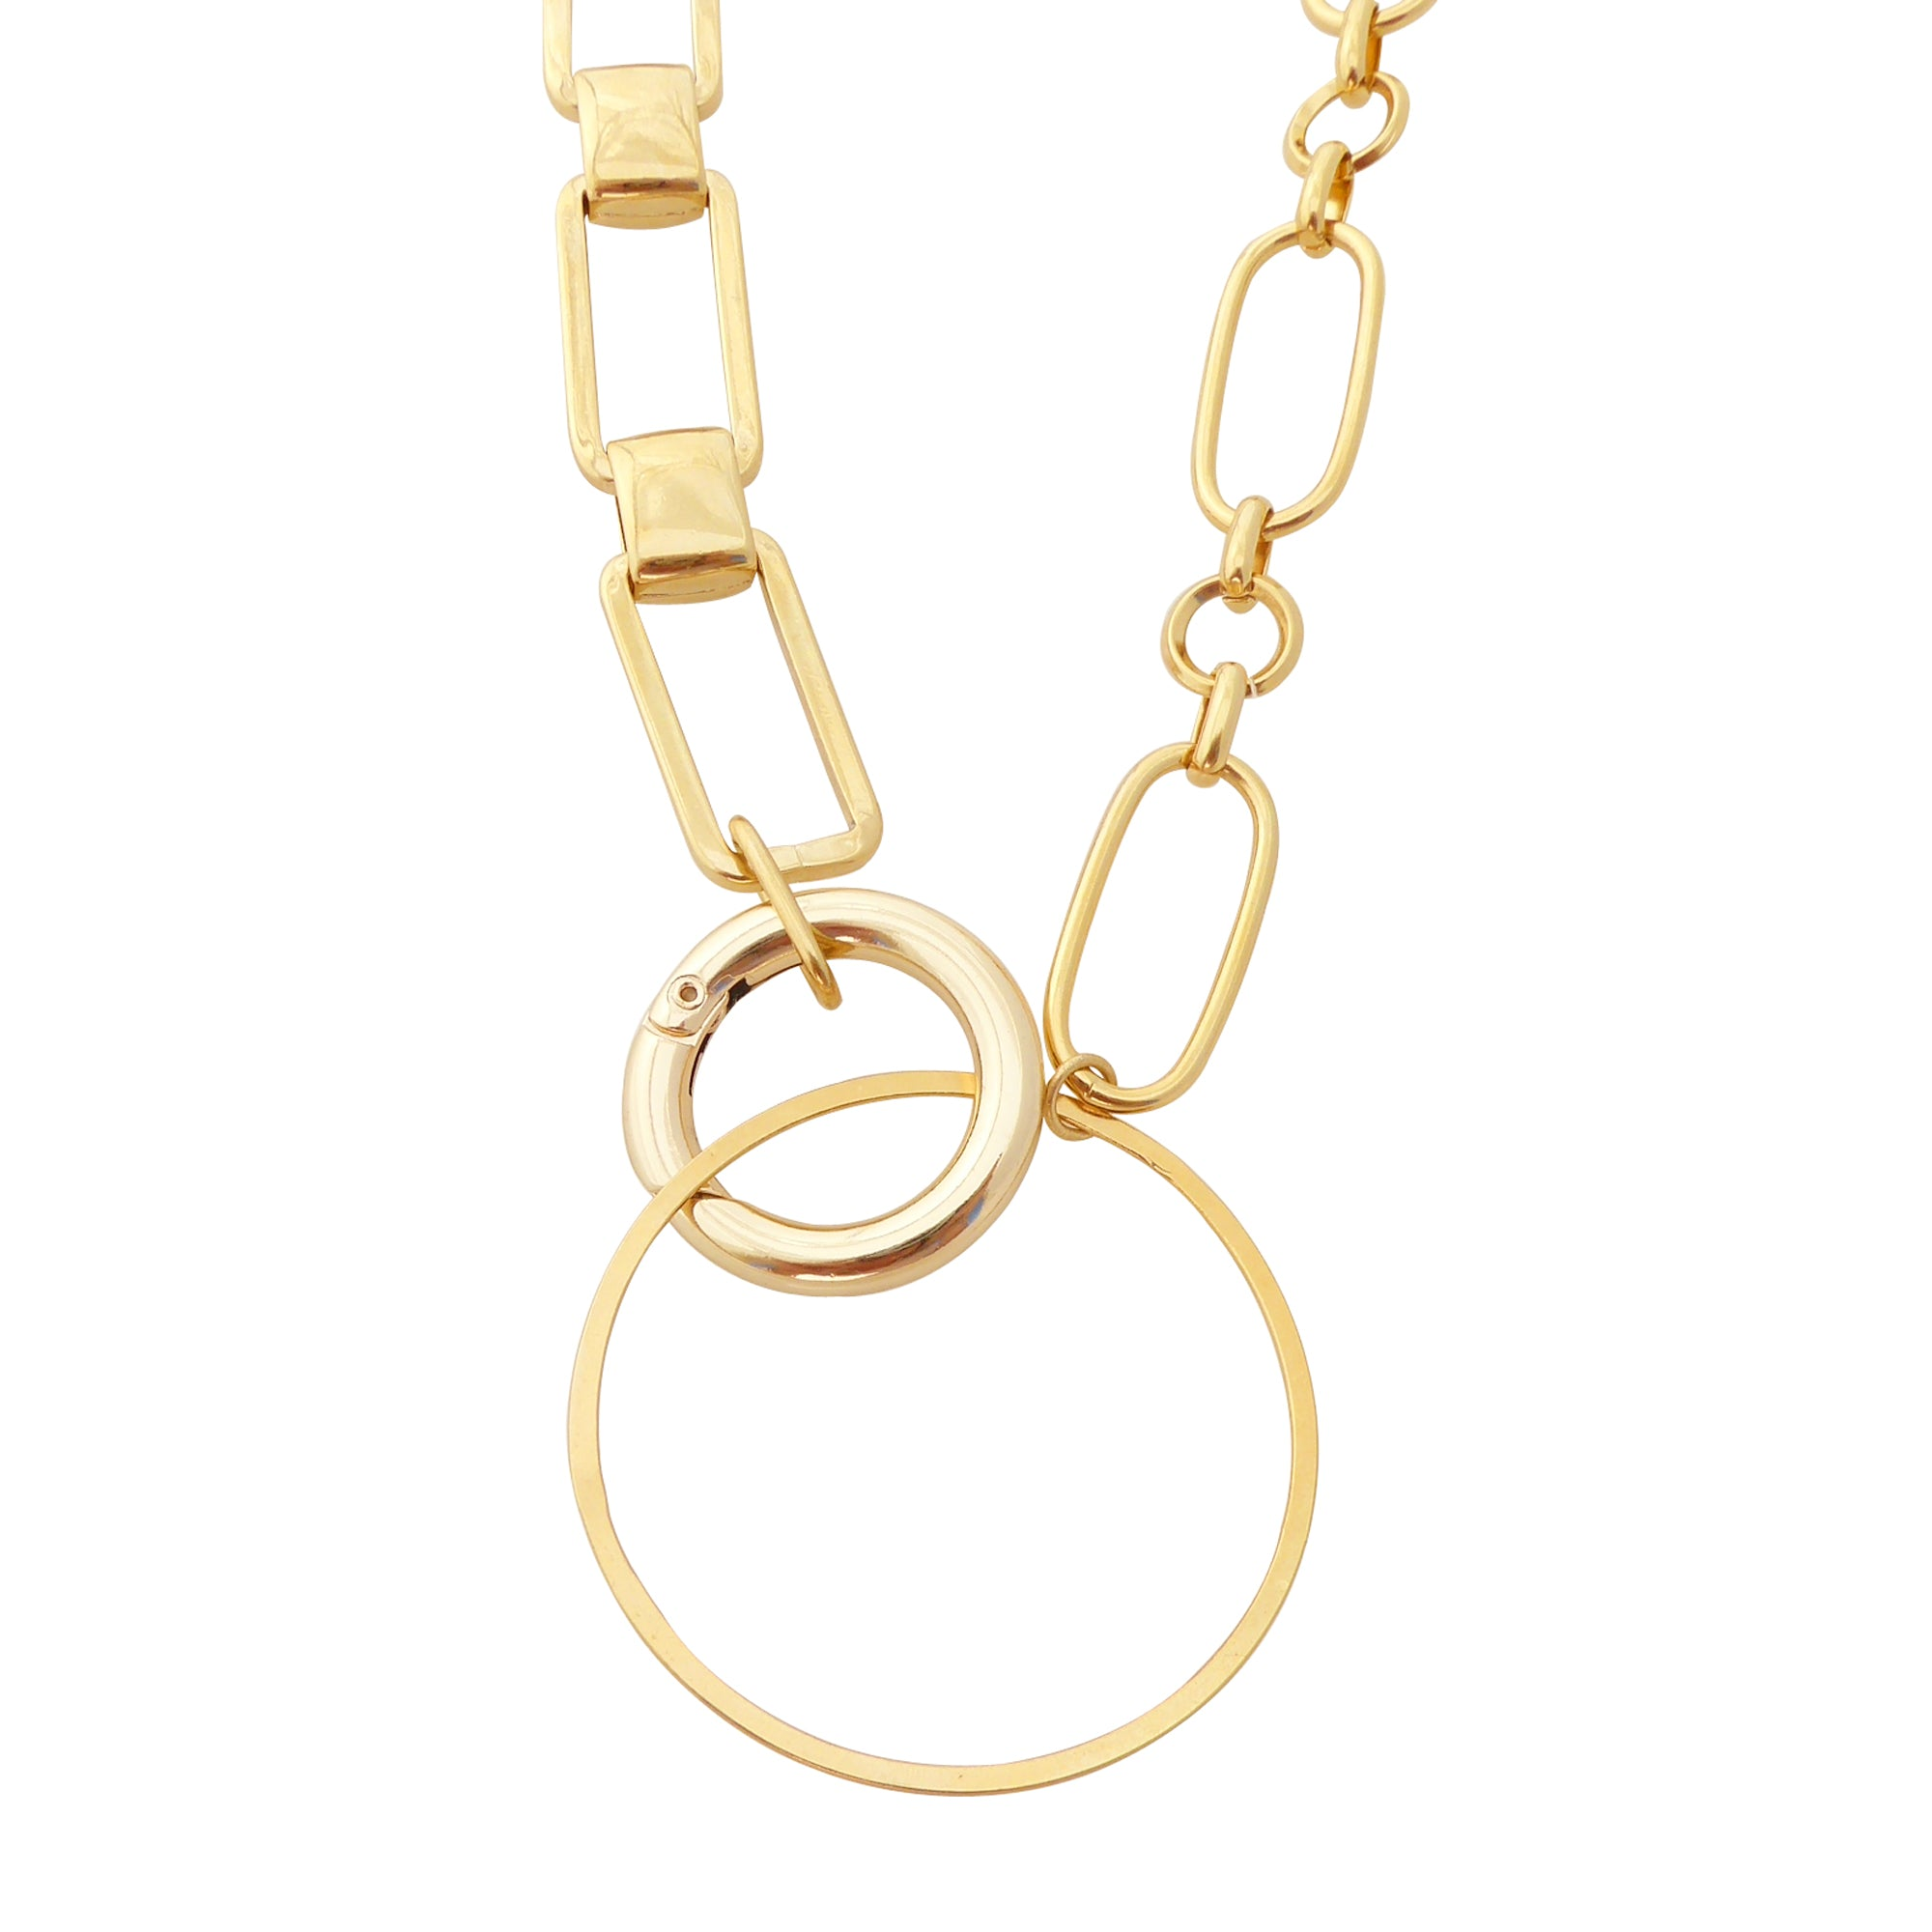 Gold geometric link necklace